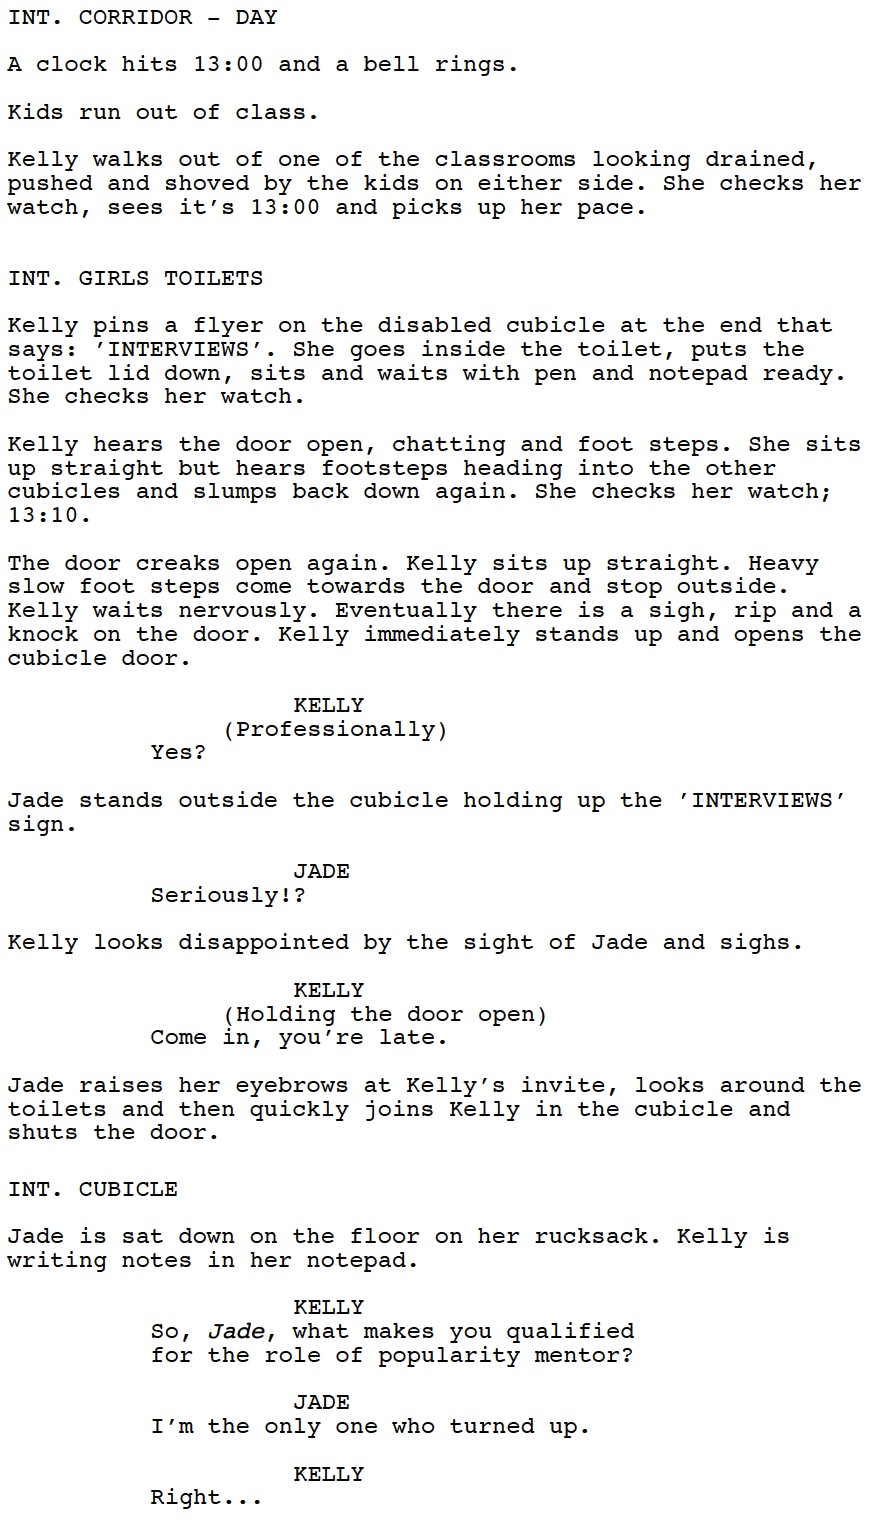 The Rules of Friendship Script Extract